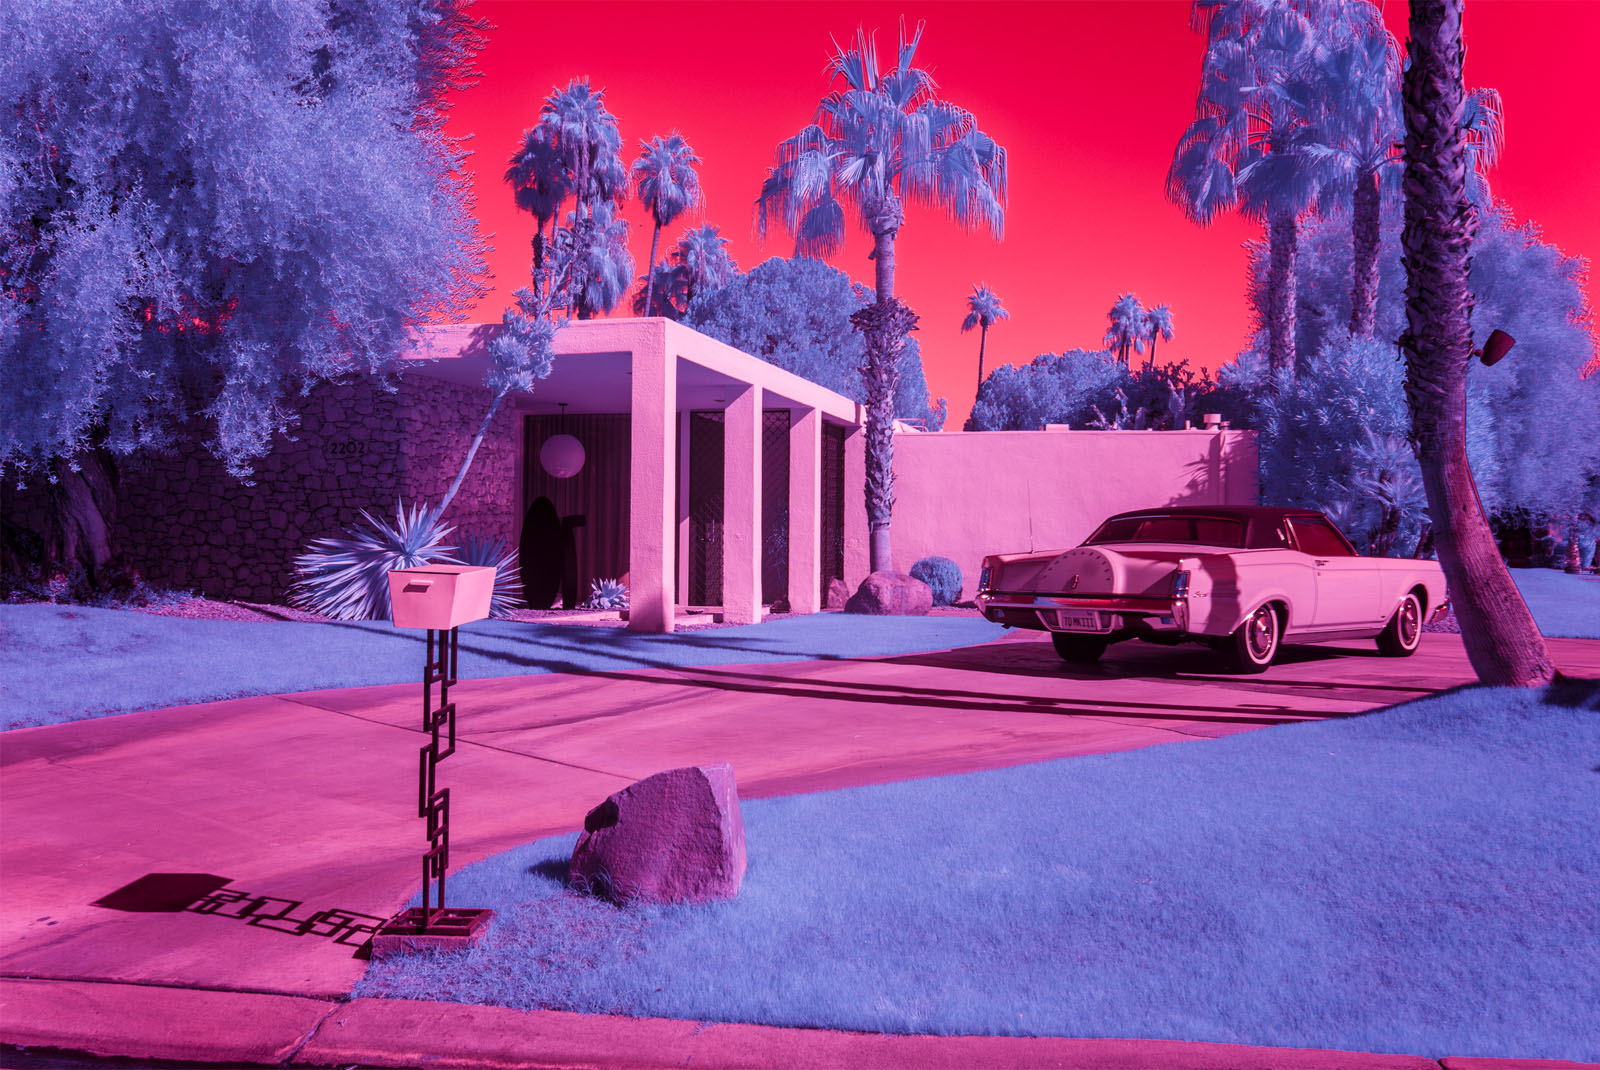 Infrared image of a classic Lincoln car in the driveway of a Palm Springs residence